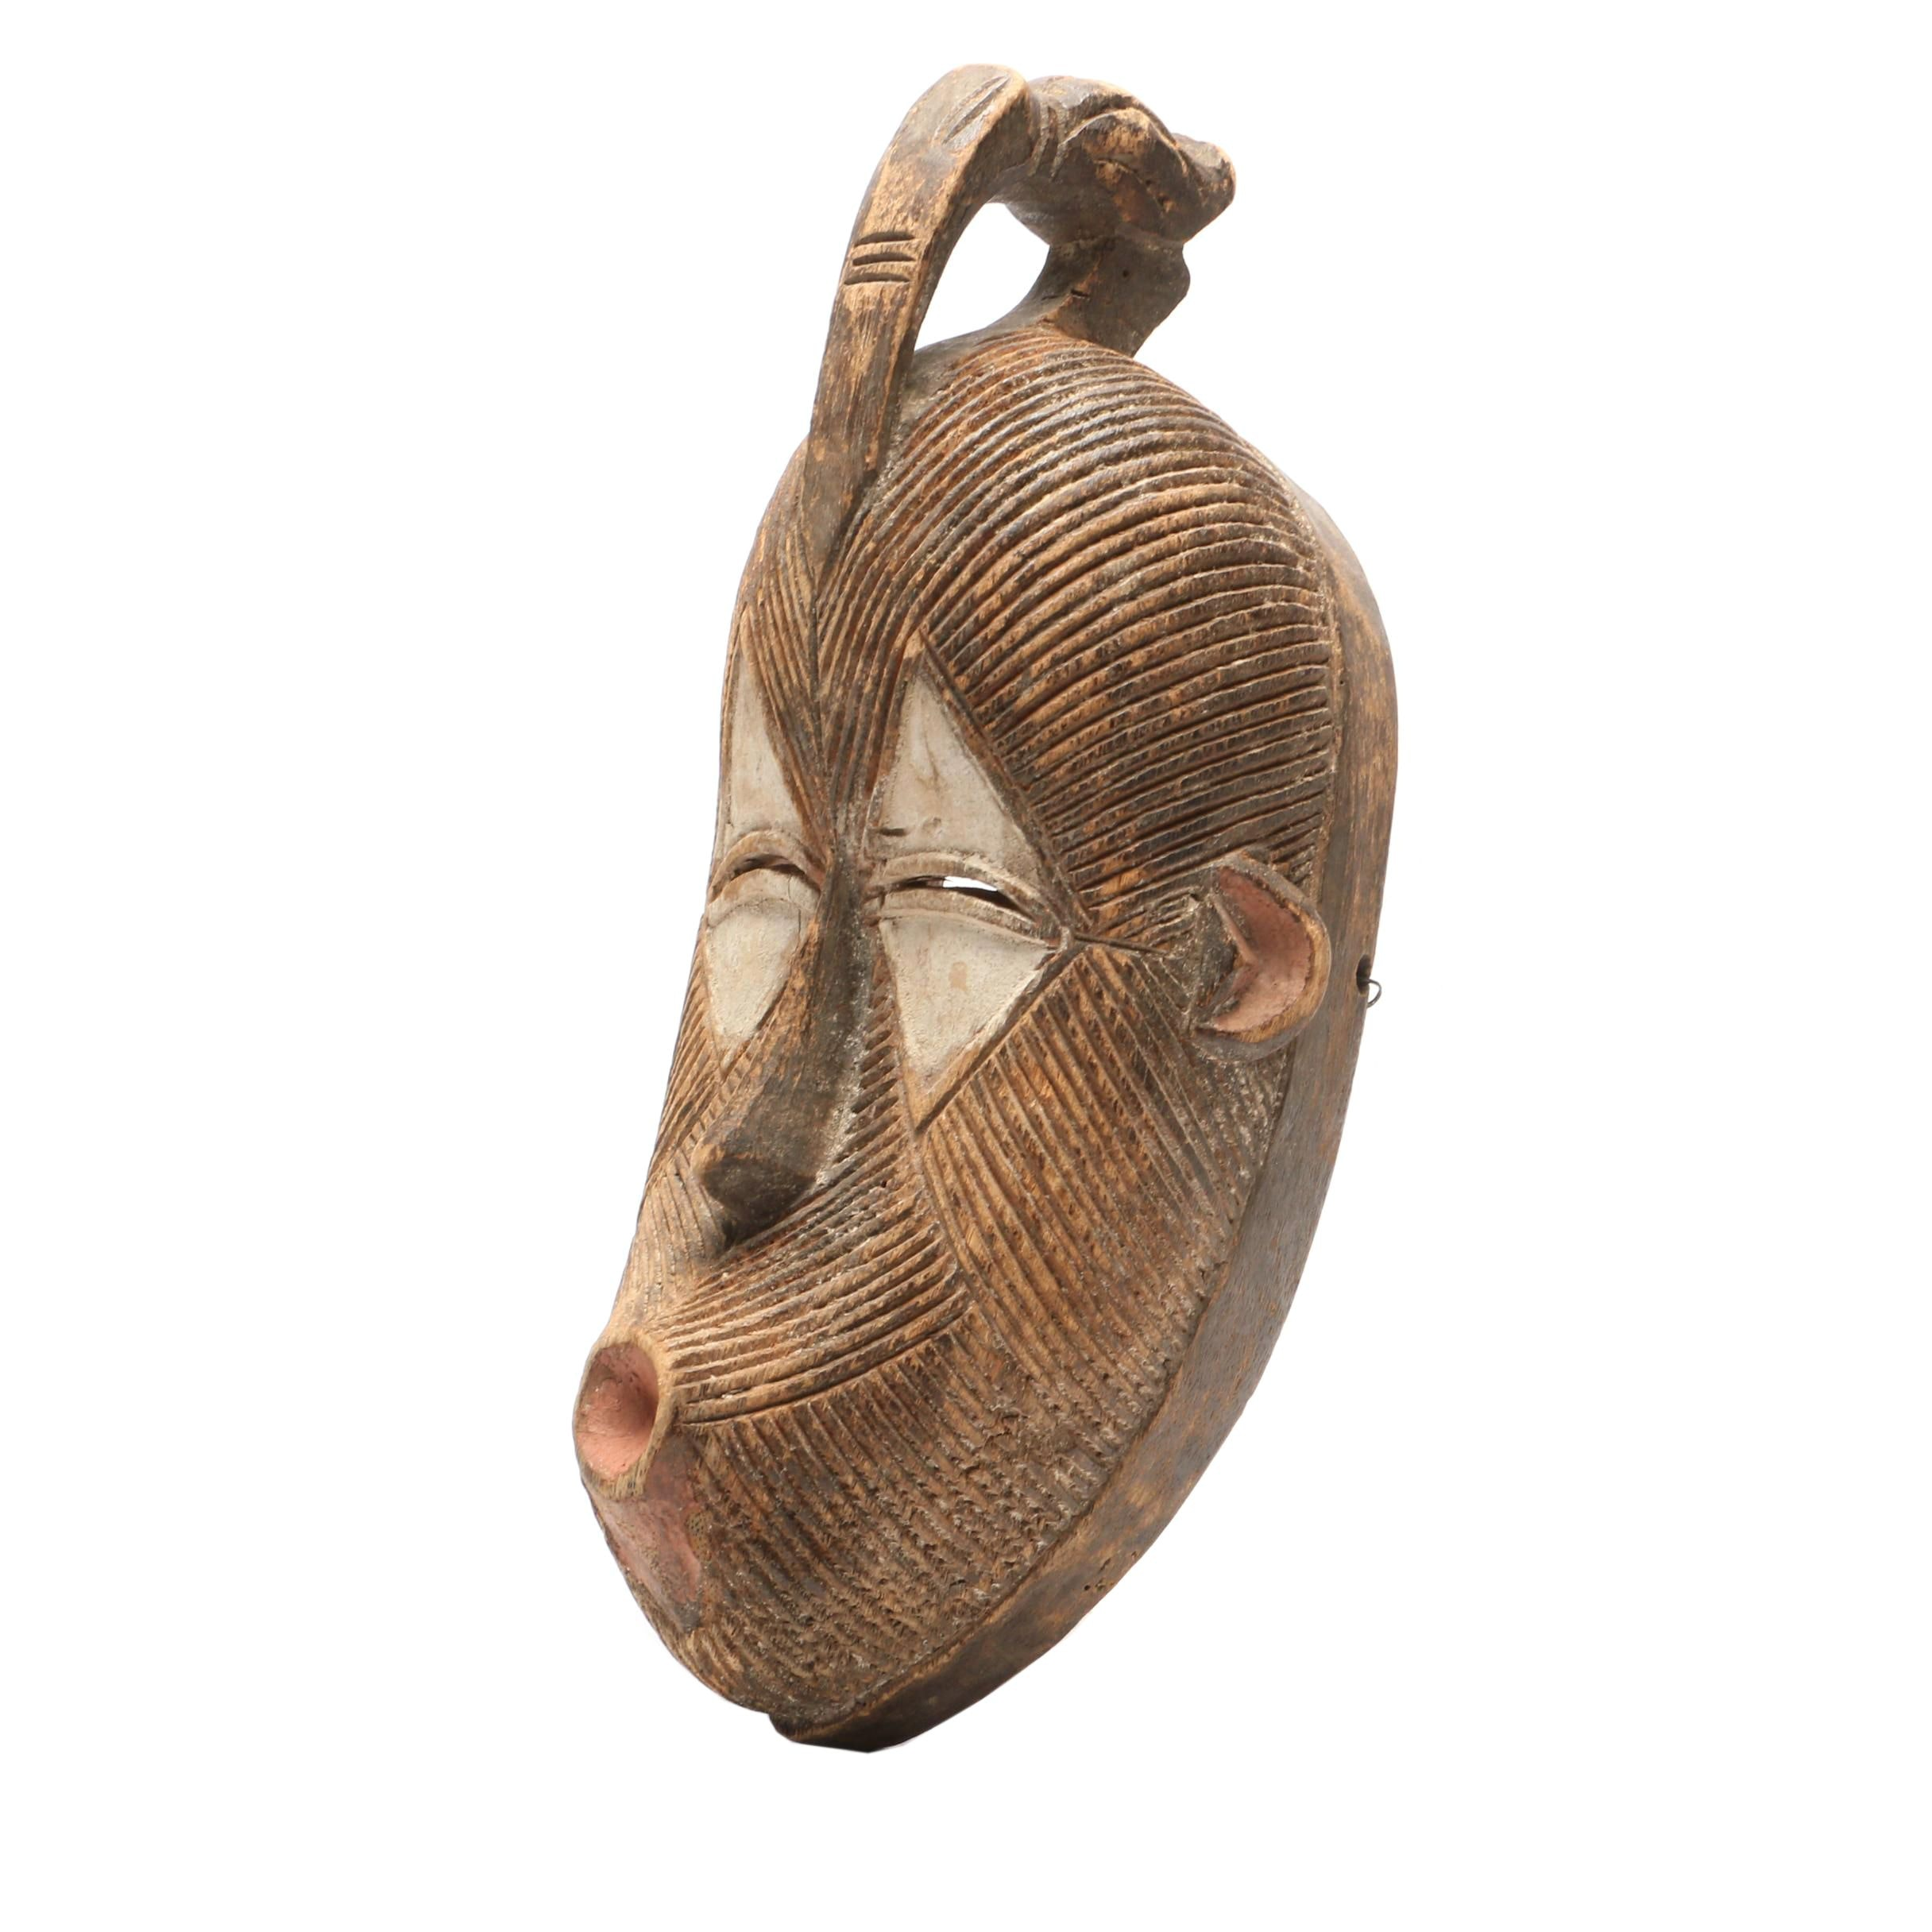 20th Century Carved Wood Mask from South East DR Congo